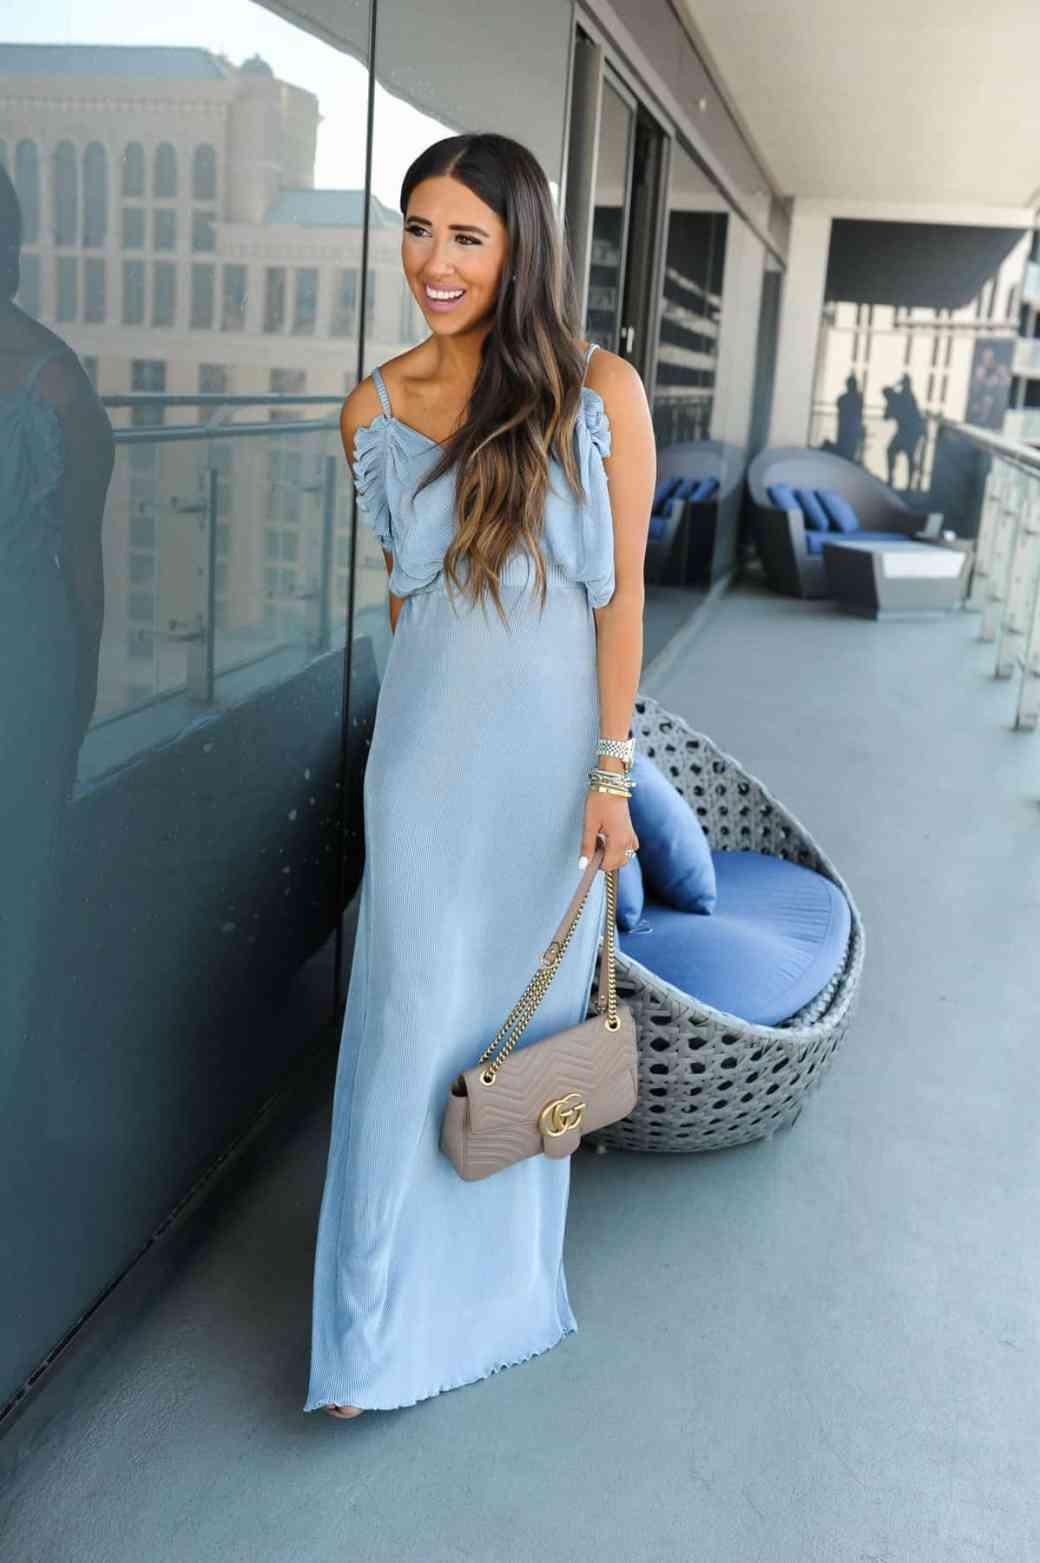 dress up buttercup 3 of 8 - Pleated Blue Maxi